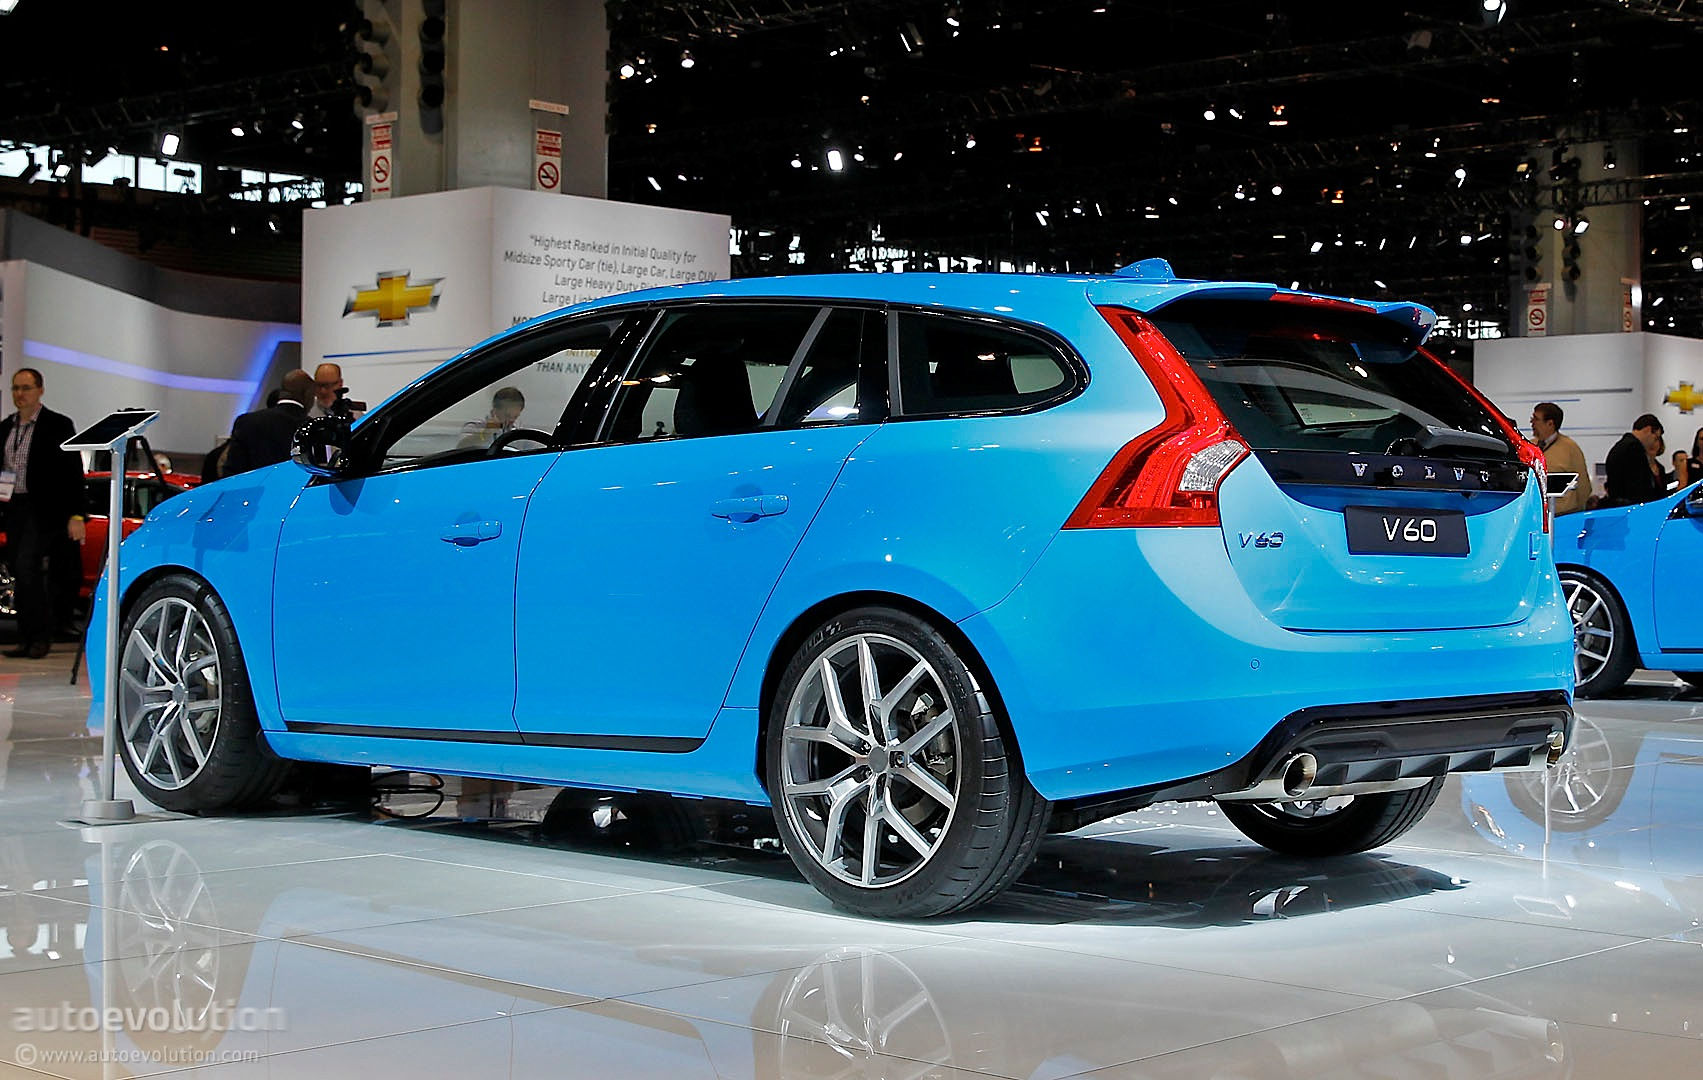 Photos Volvo V40 R Design image 8 also Volvo S60 And V60 Polestar Production Starts In Sweden 82915 besides Volvo Auto India Planning Local Assembly Decision To Be Finalised This Year as well Volvo V40 Model Year 2016 besides Volvo xc60 2013. on cross country volvo xc60